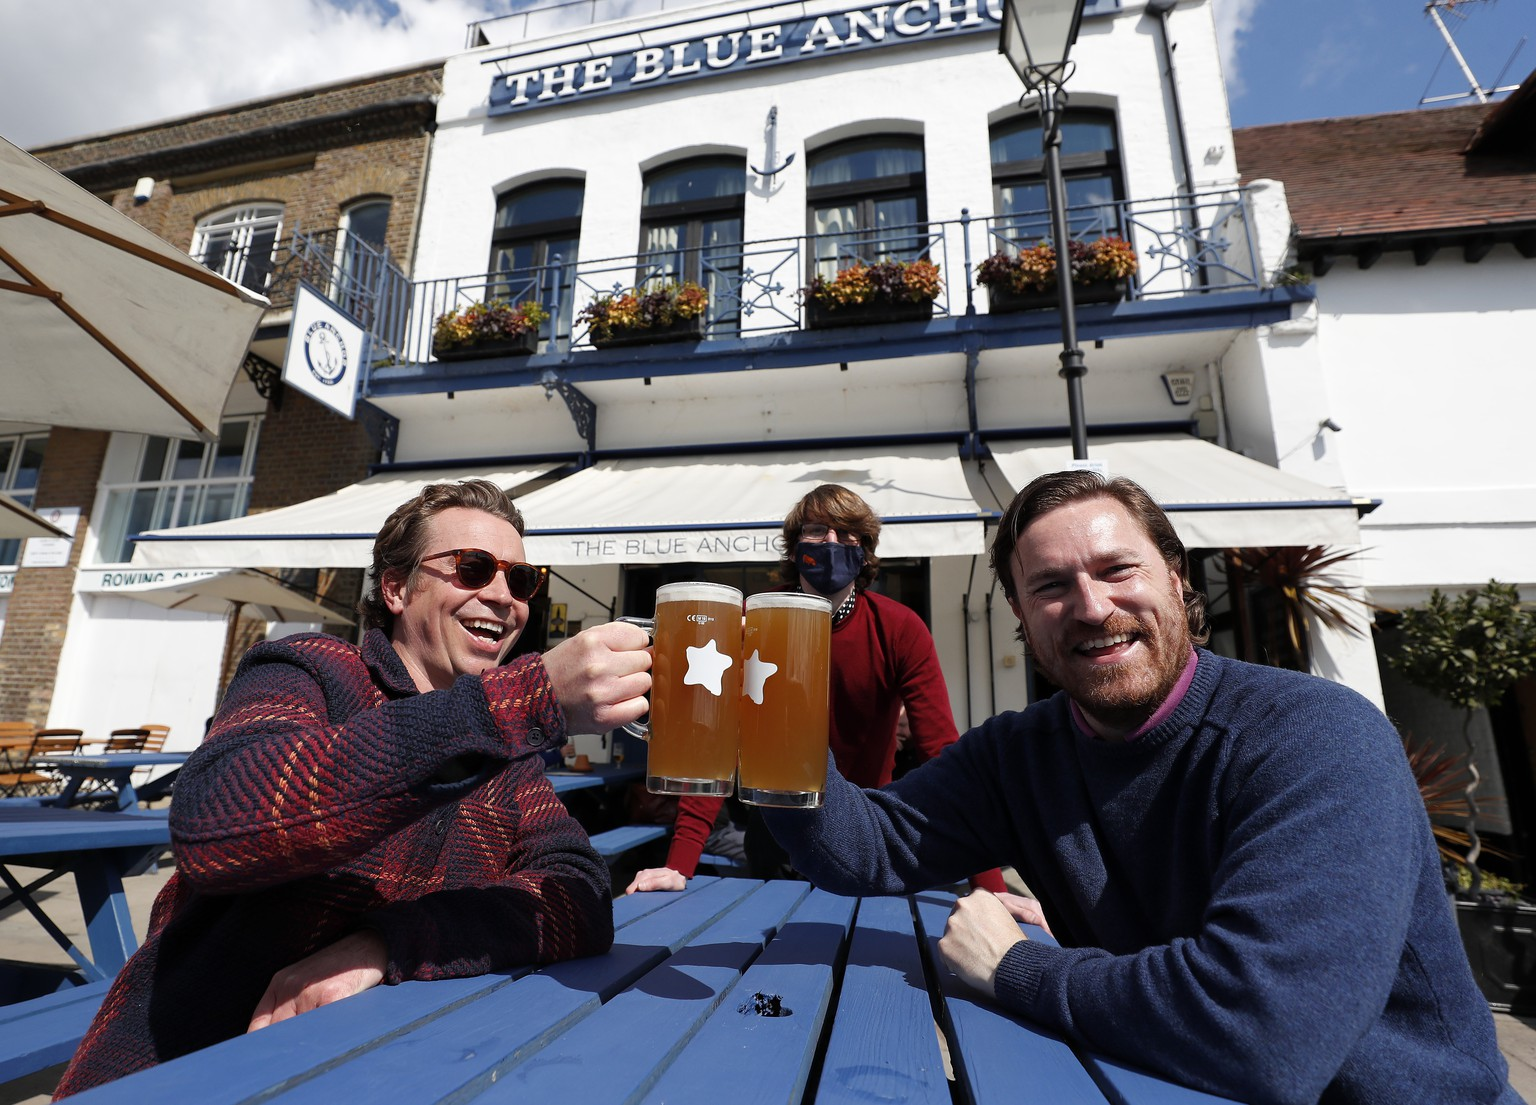 Matt and Matt enjoy their first beer outside the Blue Anchor pub on the embankment in Hammersmith, London, Monday, April 12, 2021. Millions of people in England will get their first chance in months for haircuts, casual shopping and restaurant meals on Monday, as the government takes the next step on its lockdown-lifting road map.(AP Photo/Frank Augstein)